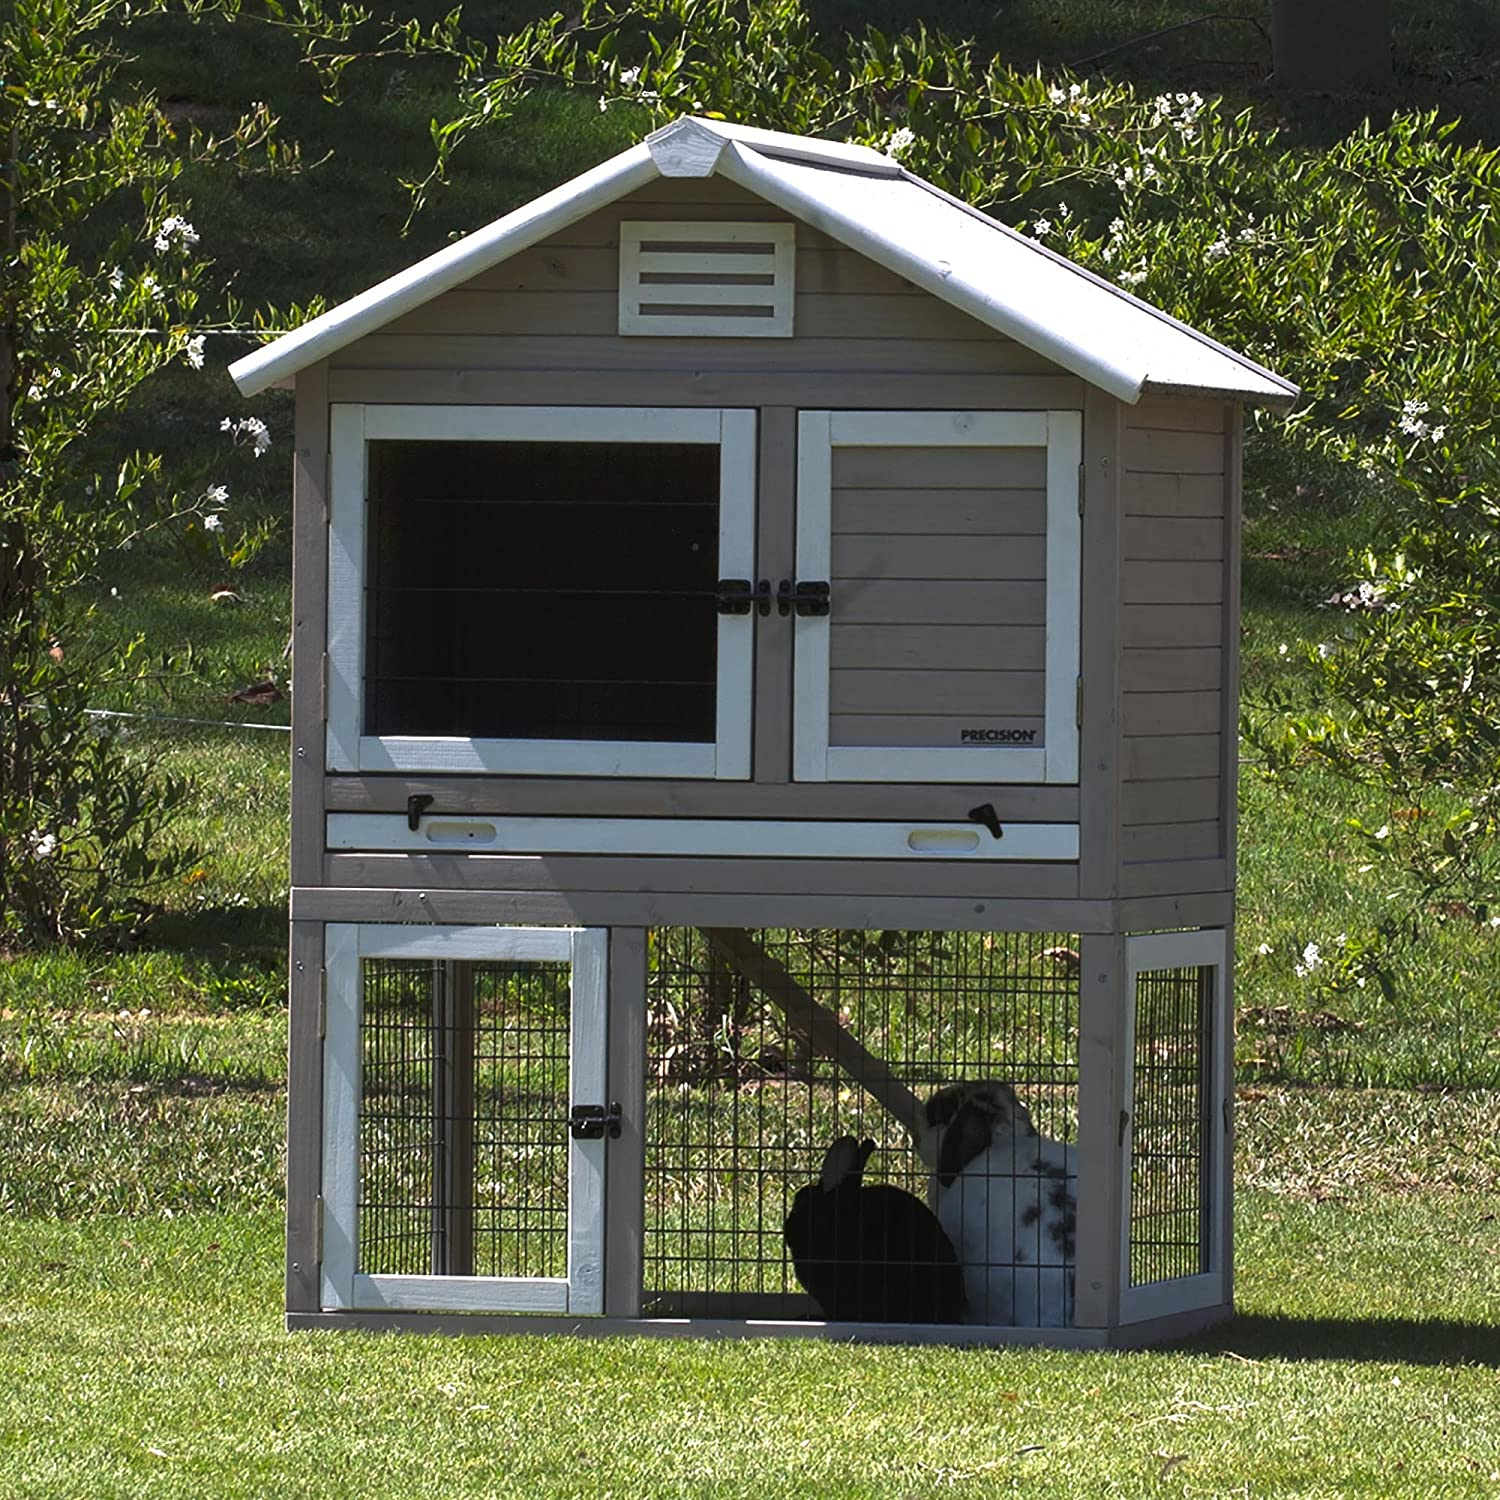 Red Large Red Large Precision Pet 7019130 Rabbit Playhouse